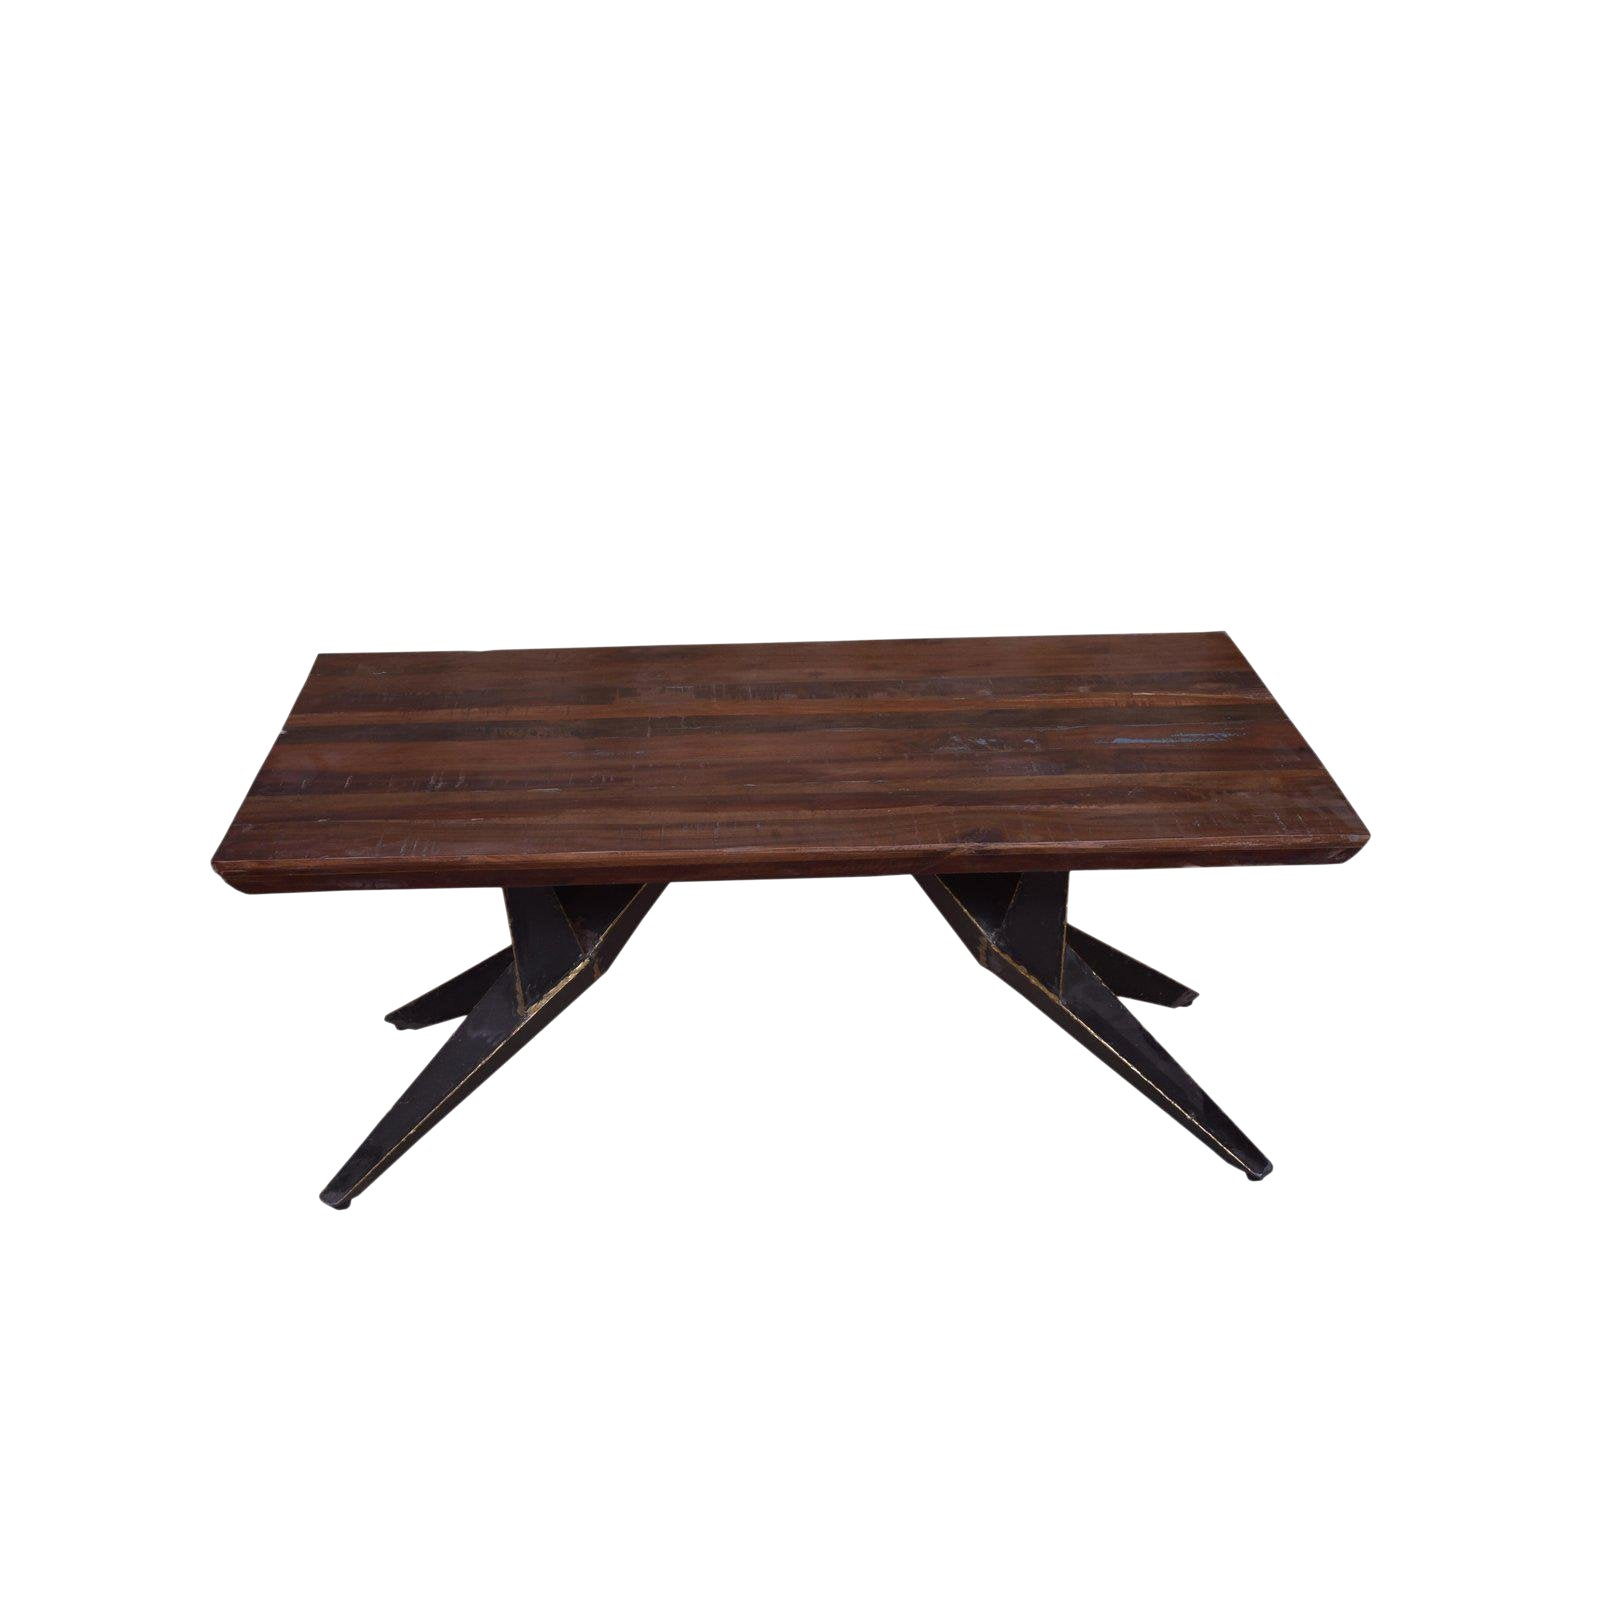 Faunia Coffee Table With Iron Legs Living Room Wooden Top